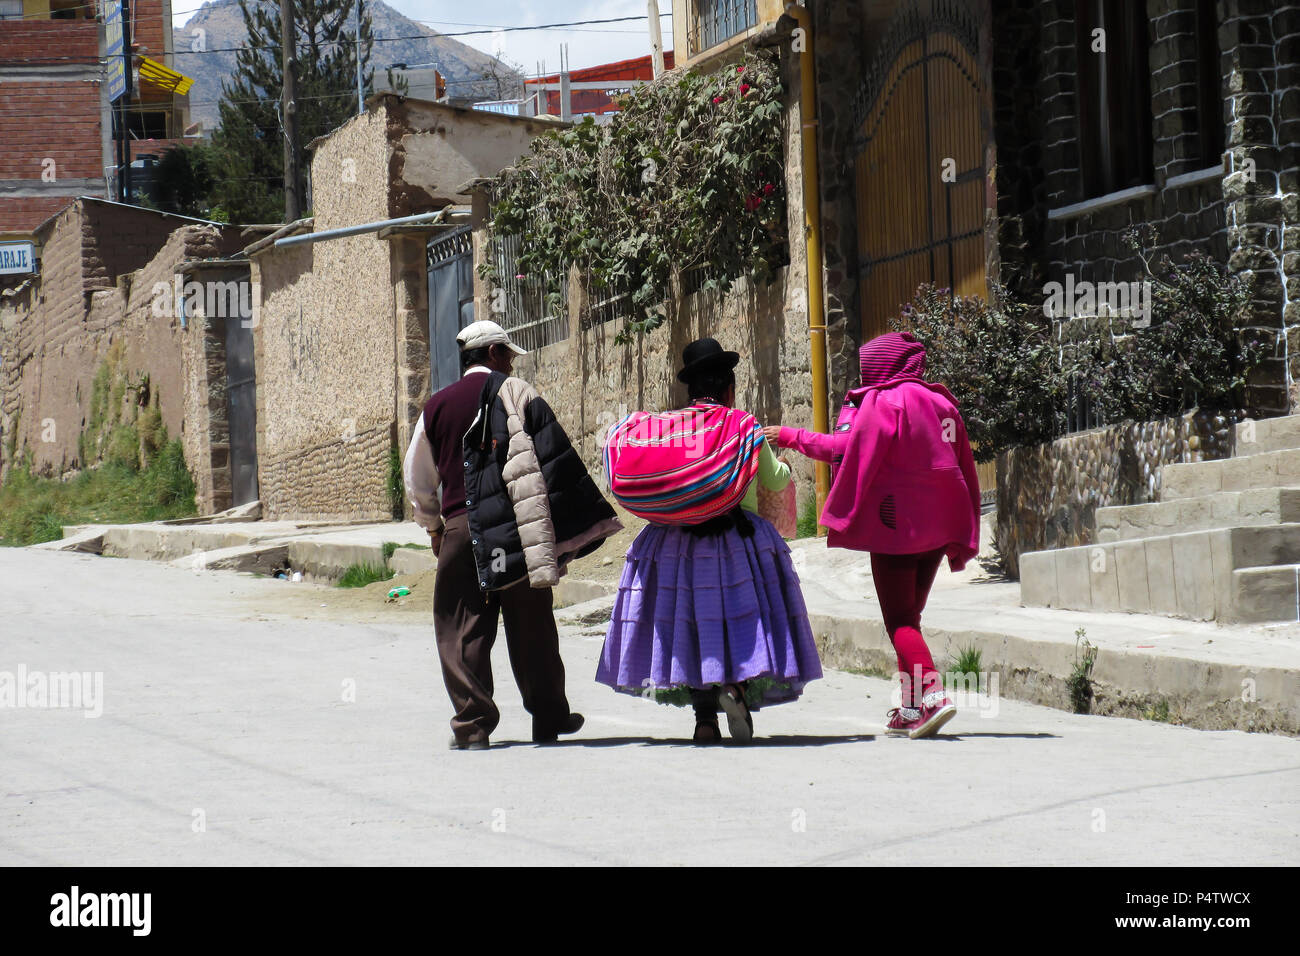 Bolivian family walking on the streets of Copacabana - Stock Image